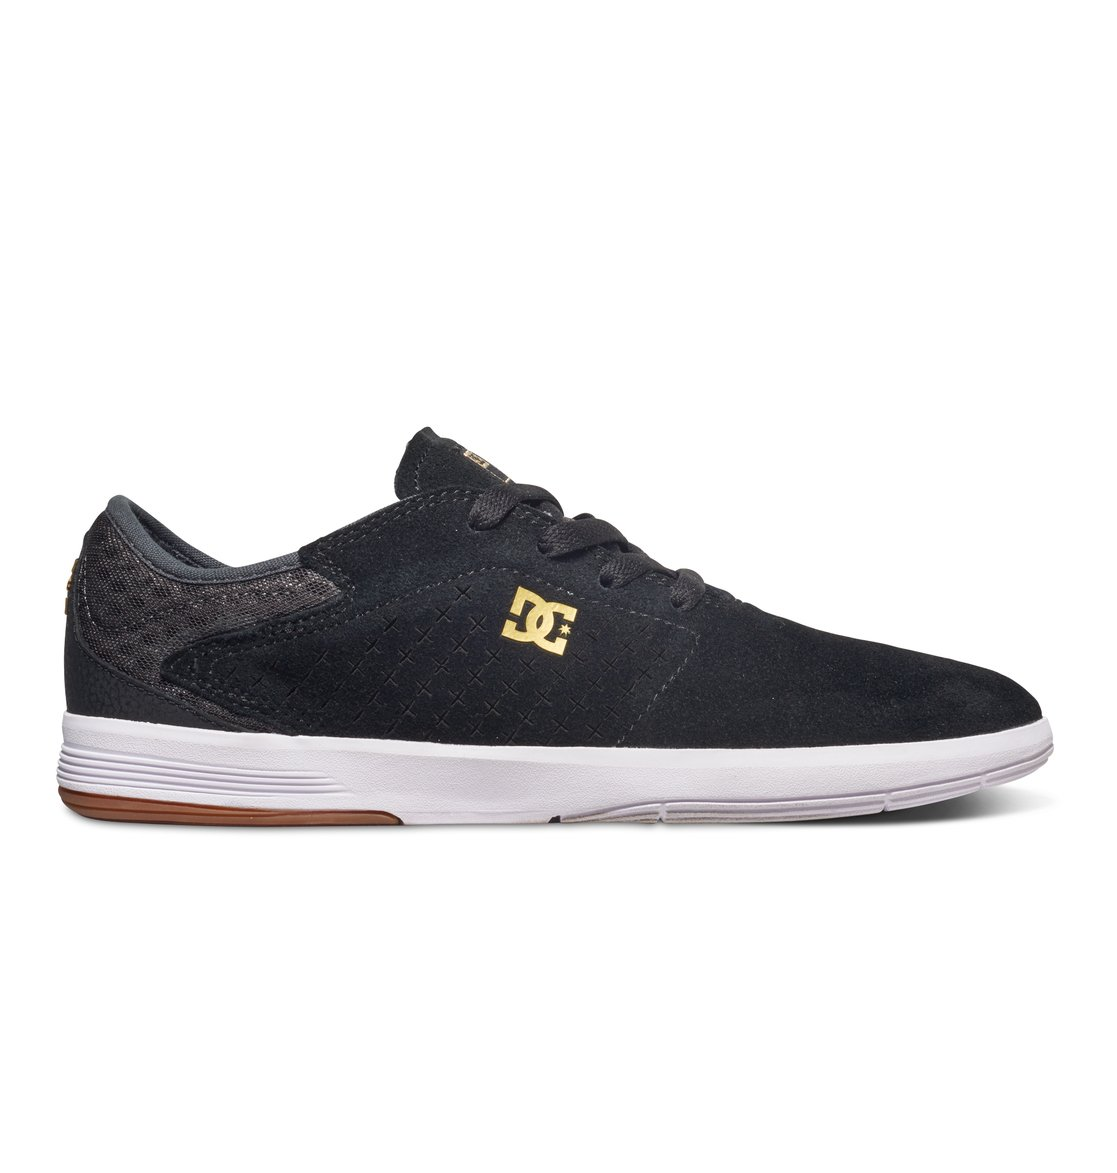 buy sale differently newest style New Jack S - Skate Shoes